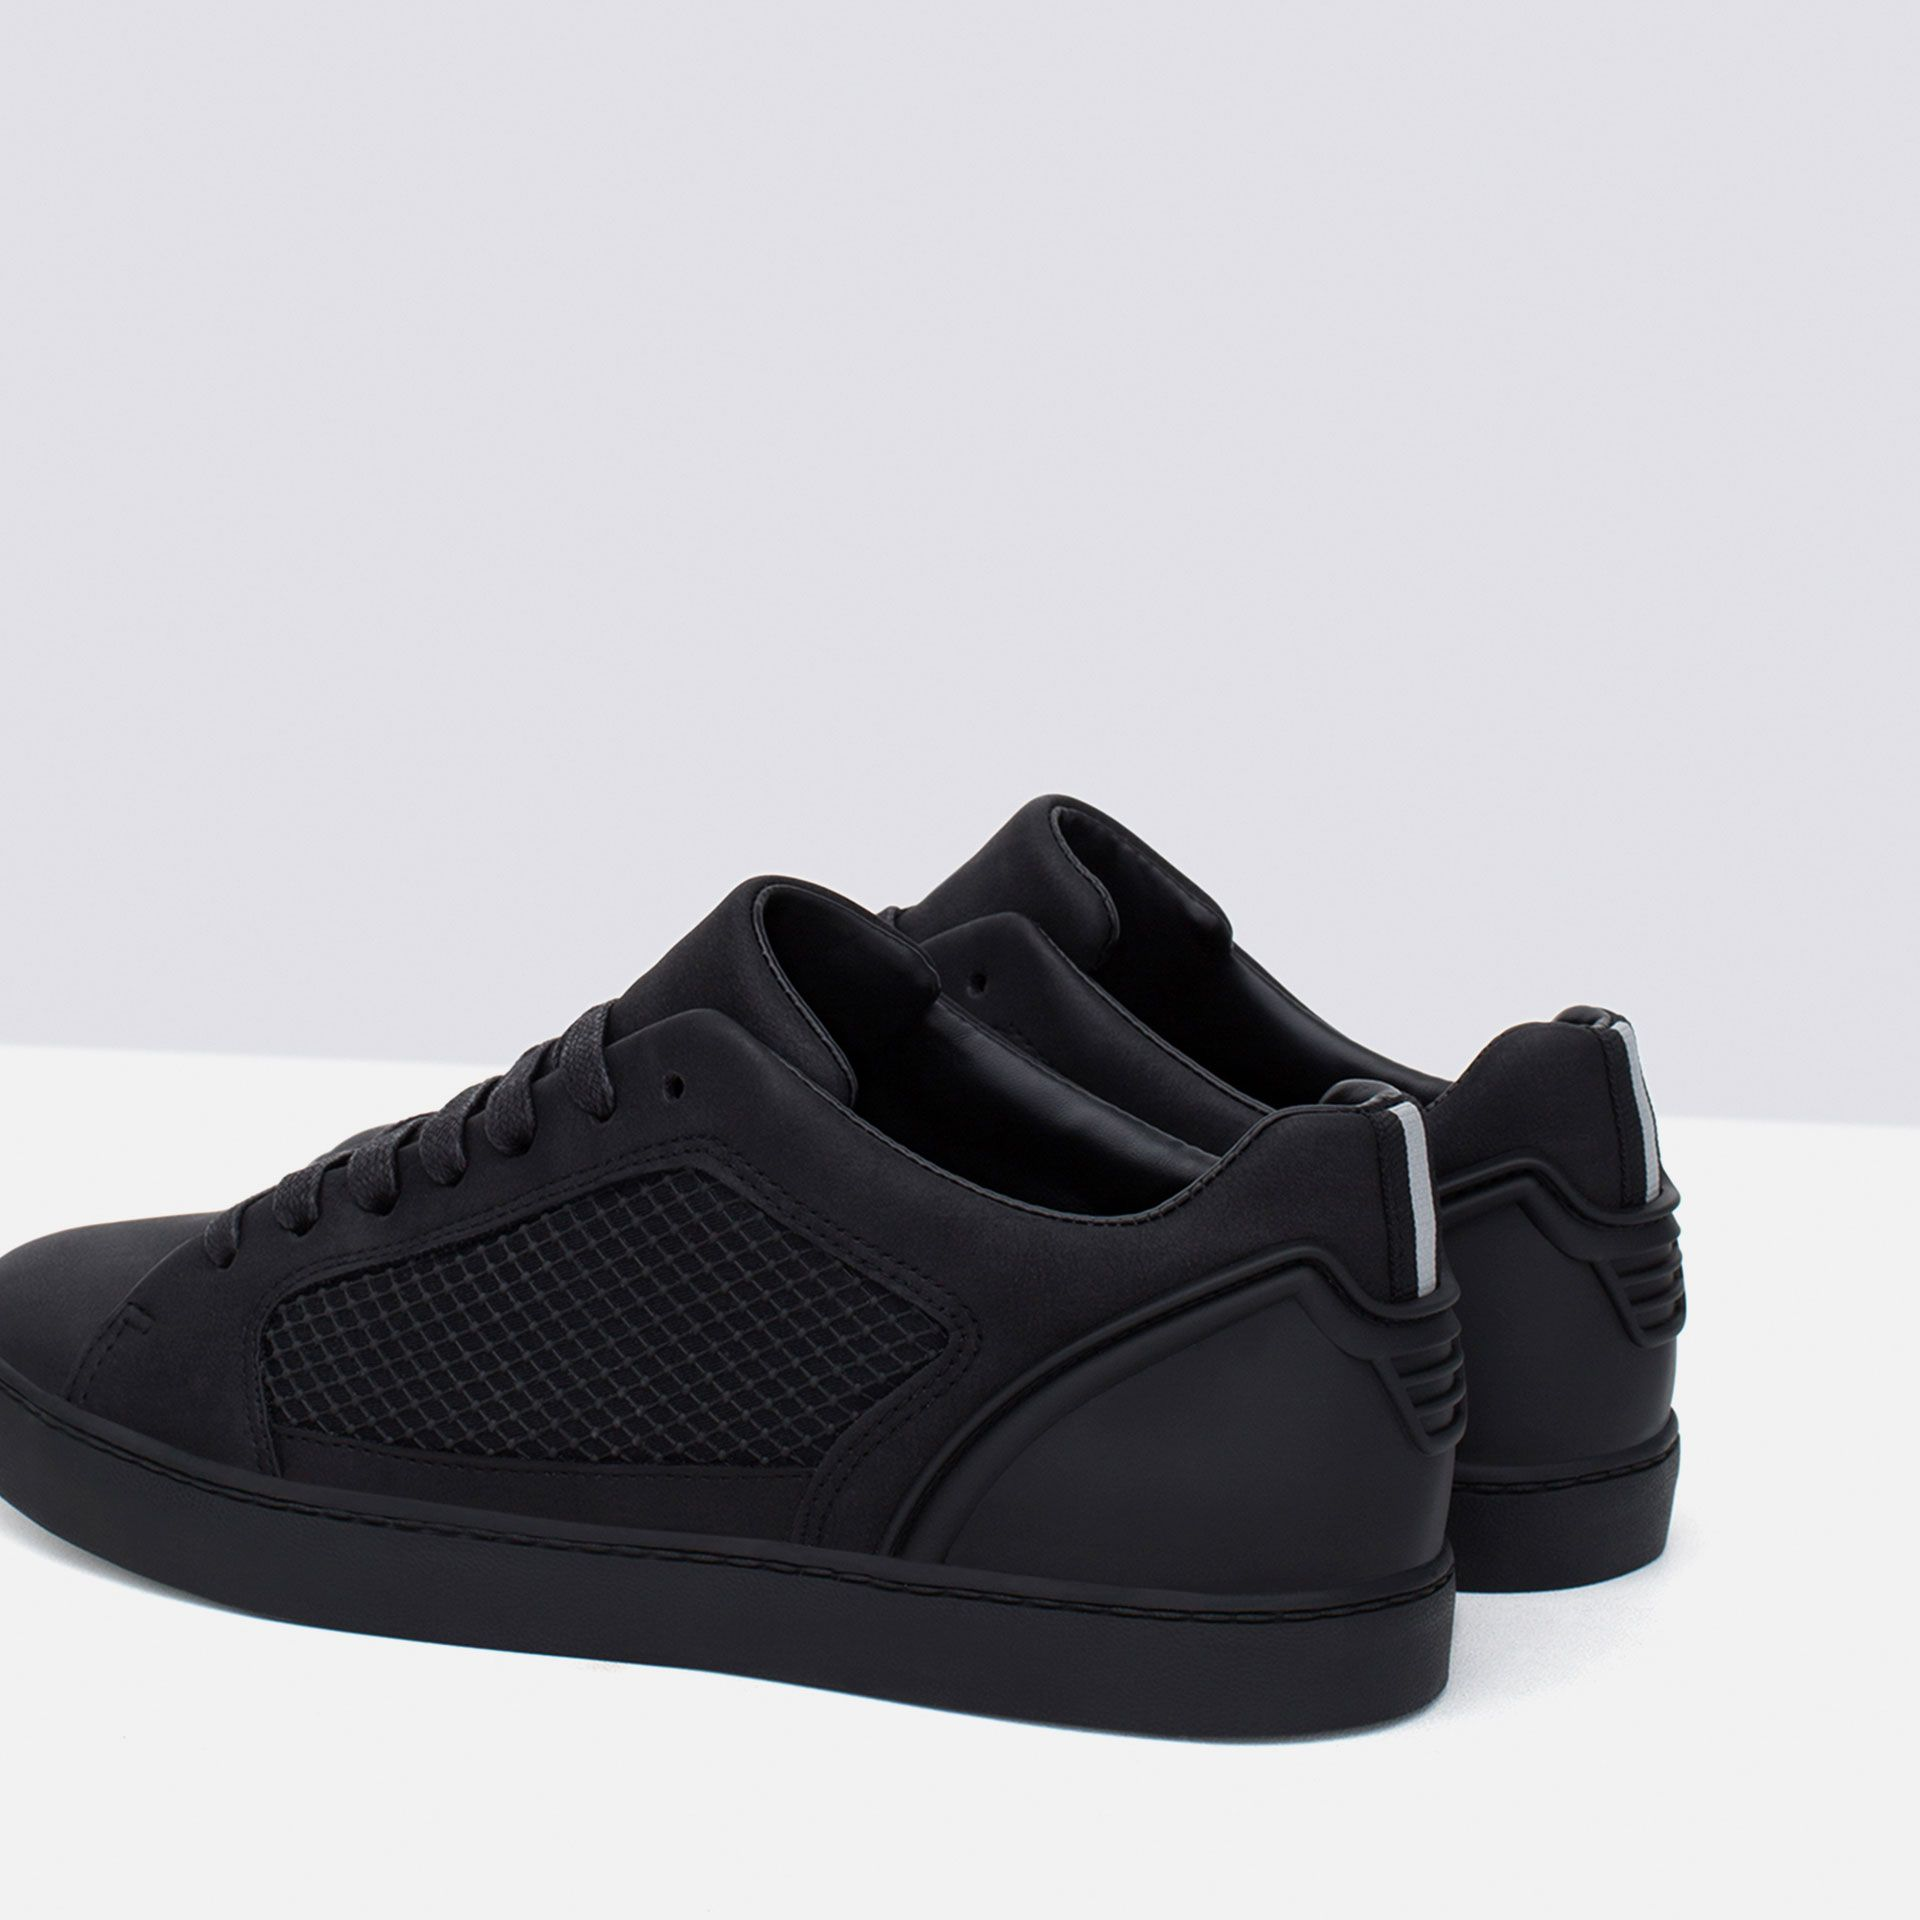 innovative design e6f99 a983a SINGLE COLOR TECHNICAL SNEAKERS - View all - Shoes - MAN   ZARA Canada